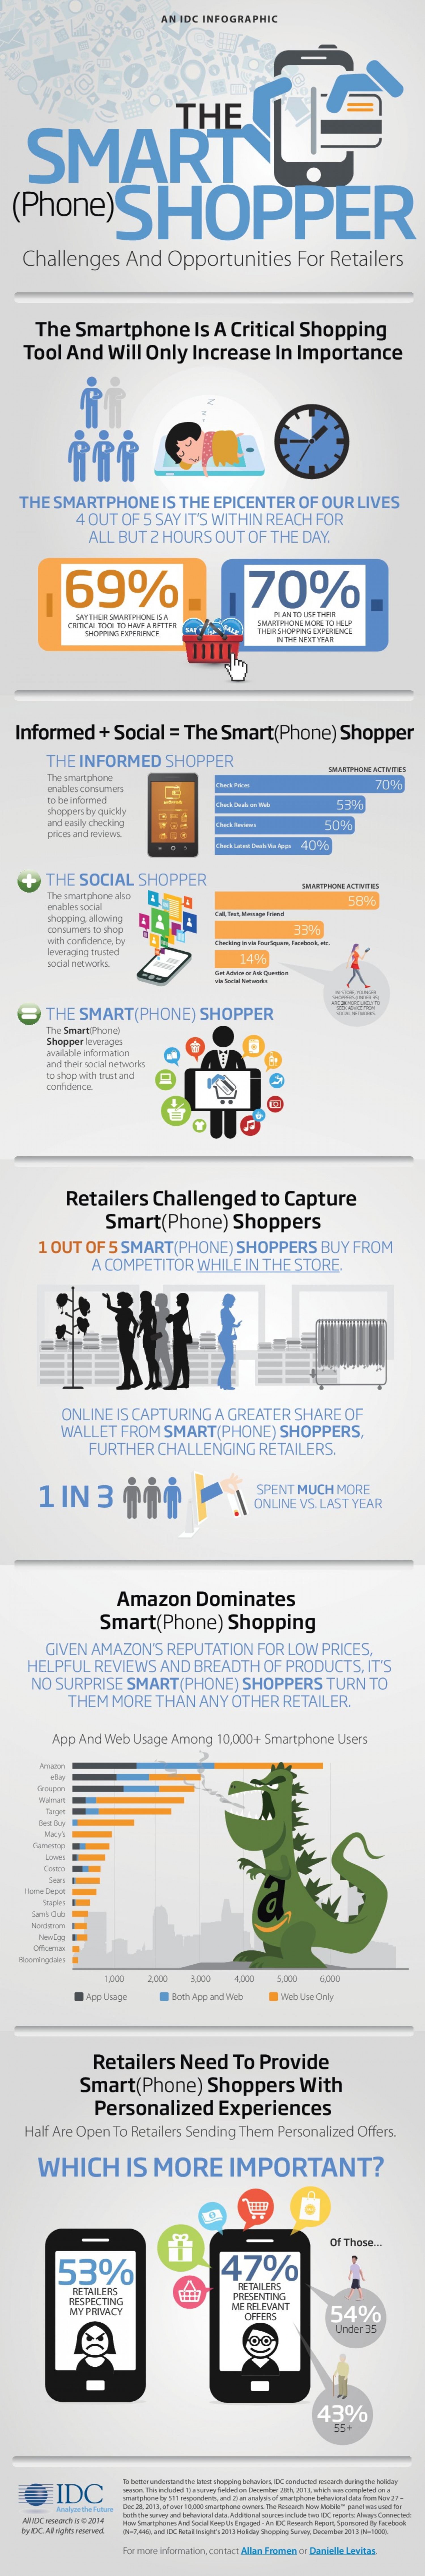 The Smart(Phone) Shopper Infographic